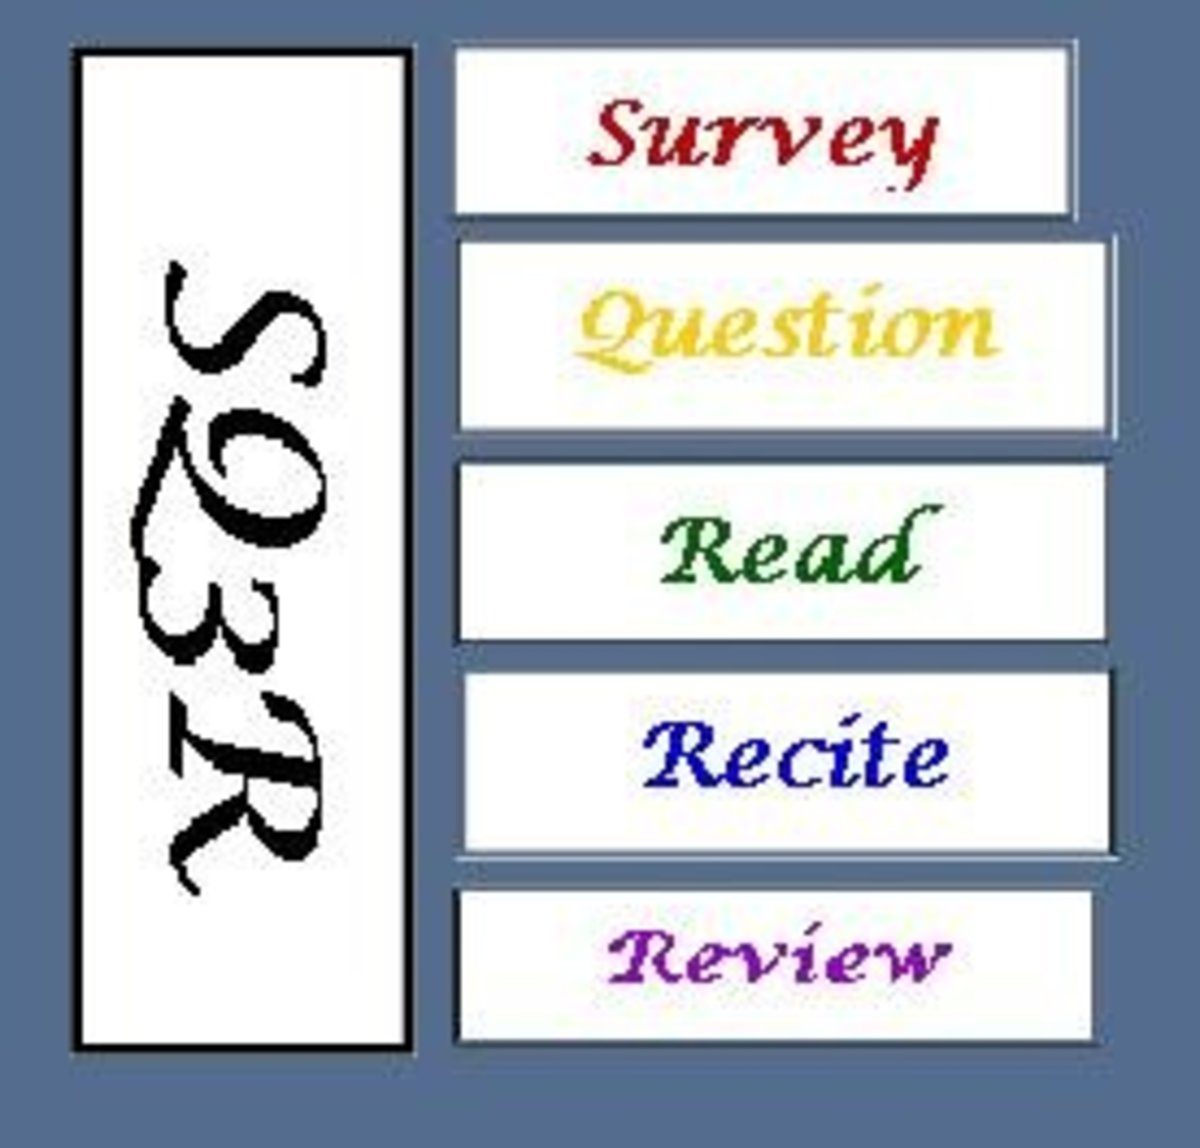 The SQ3R reading method consists of these 5 steps: survey, question, read, recite, review.